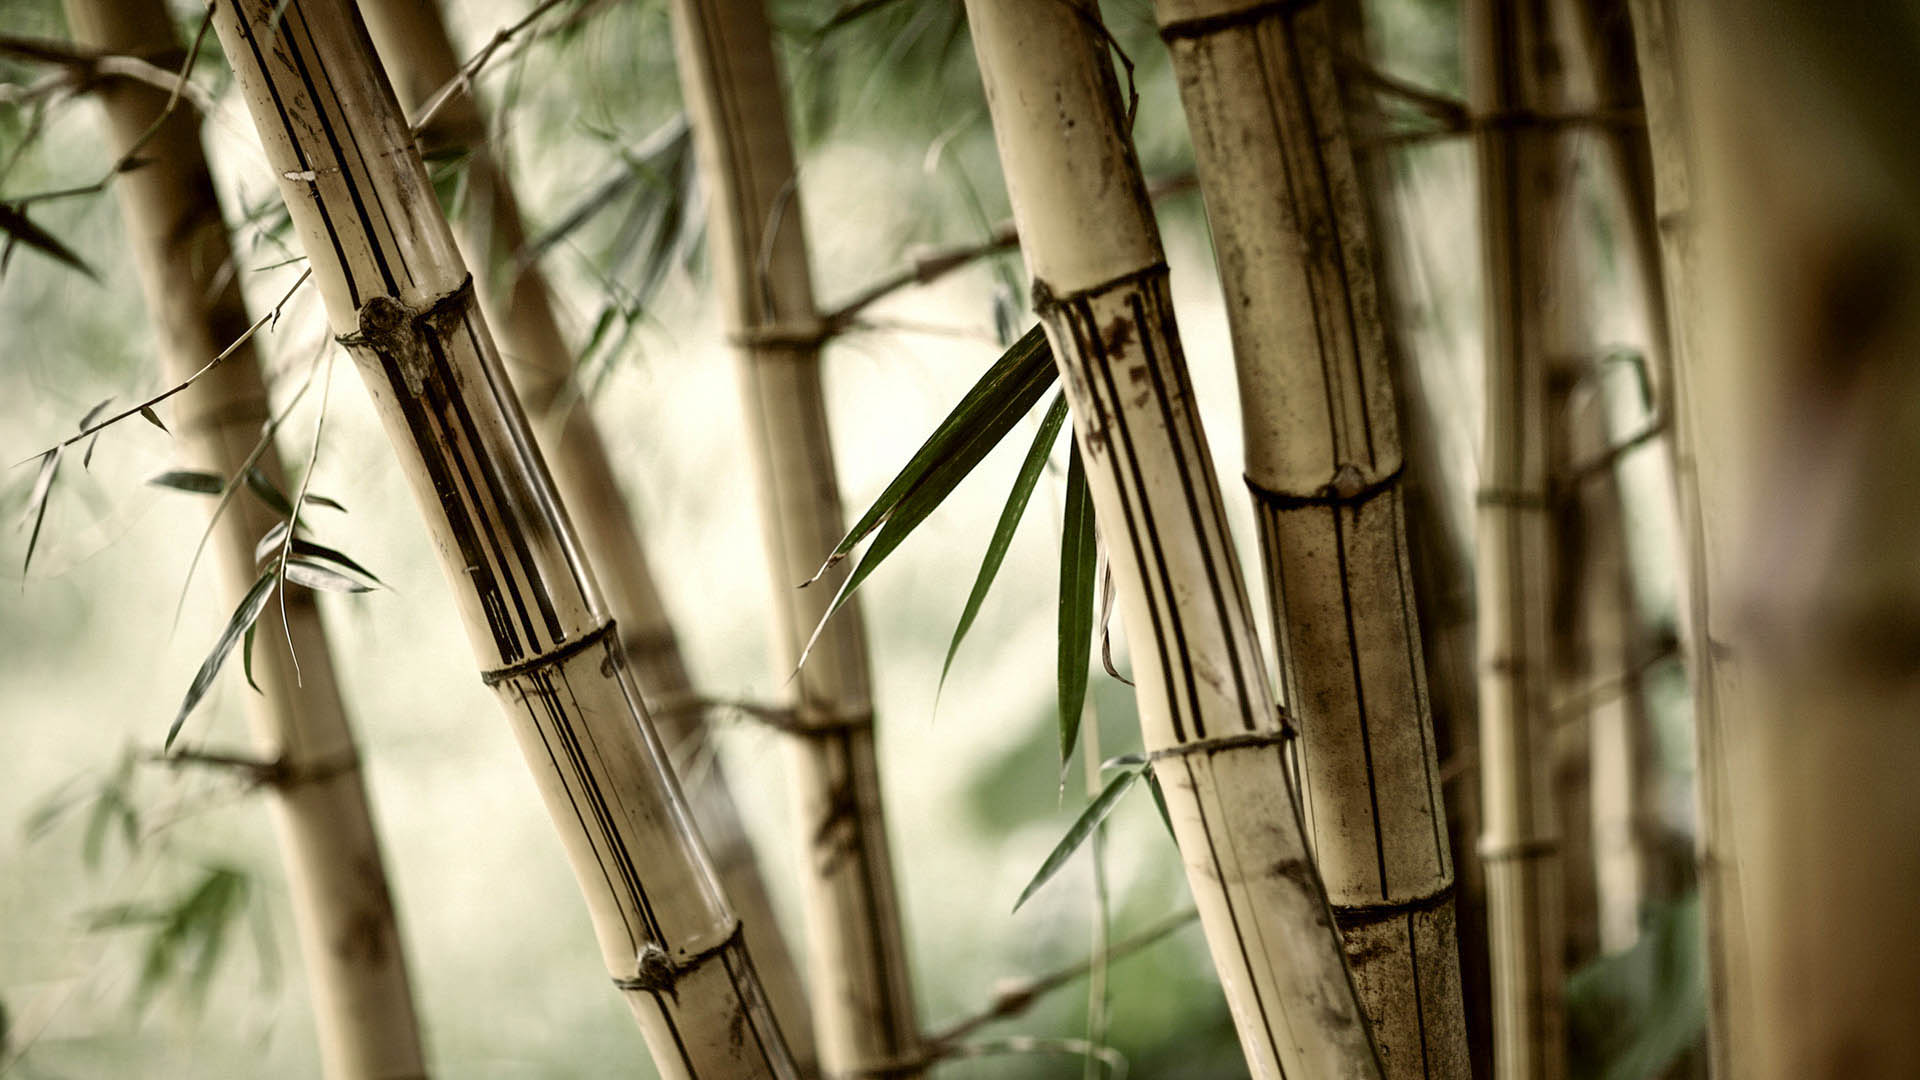 New 3d Wallpaper Free Download Bamboo New Hd Wallpapers 2015 High Quality All Hd